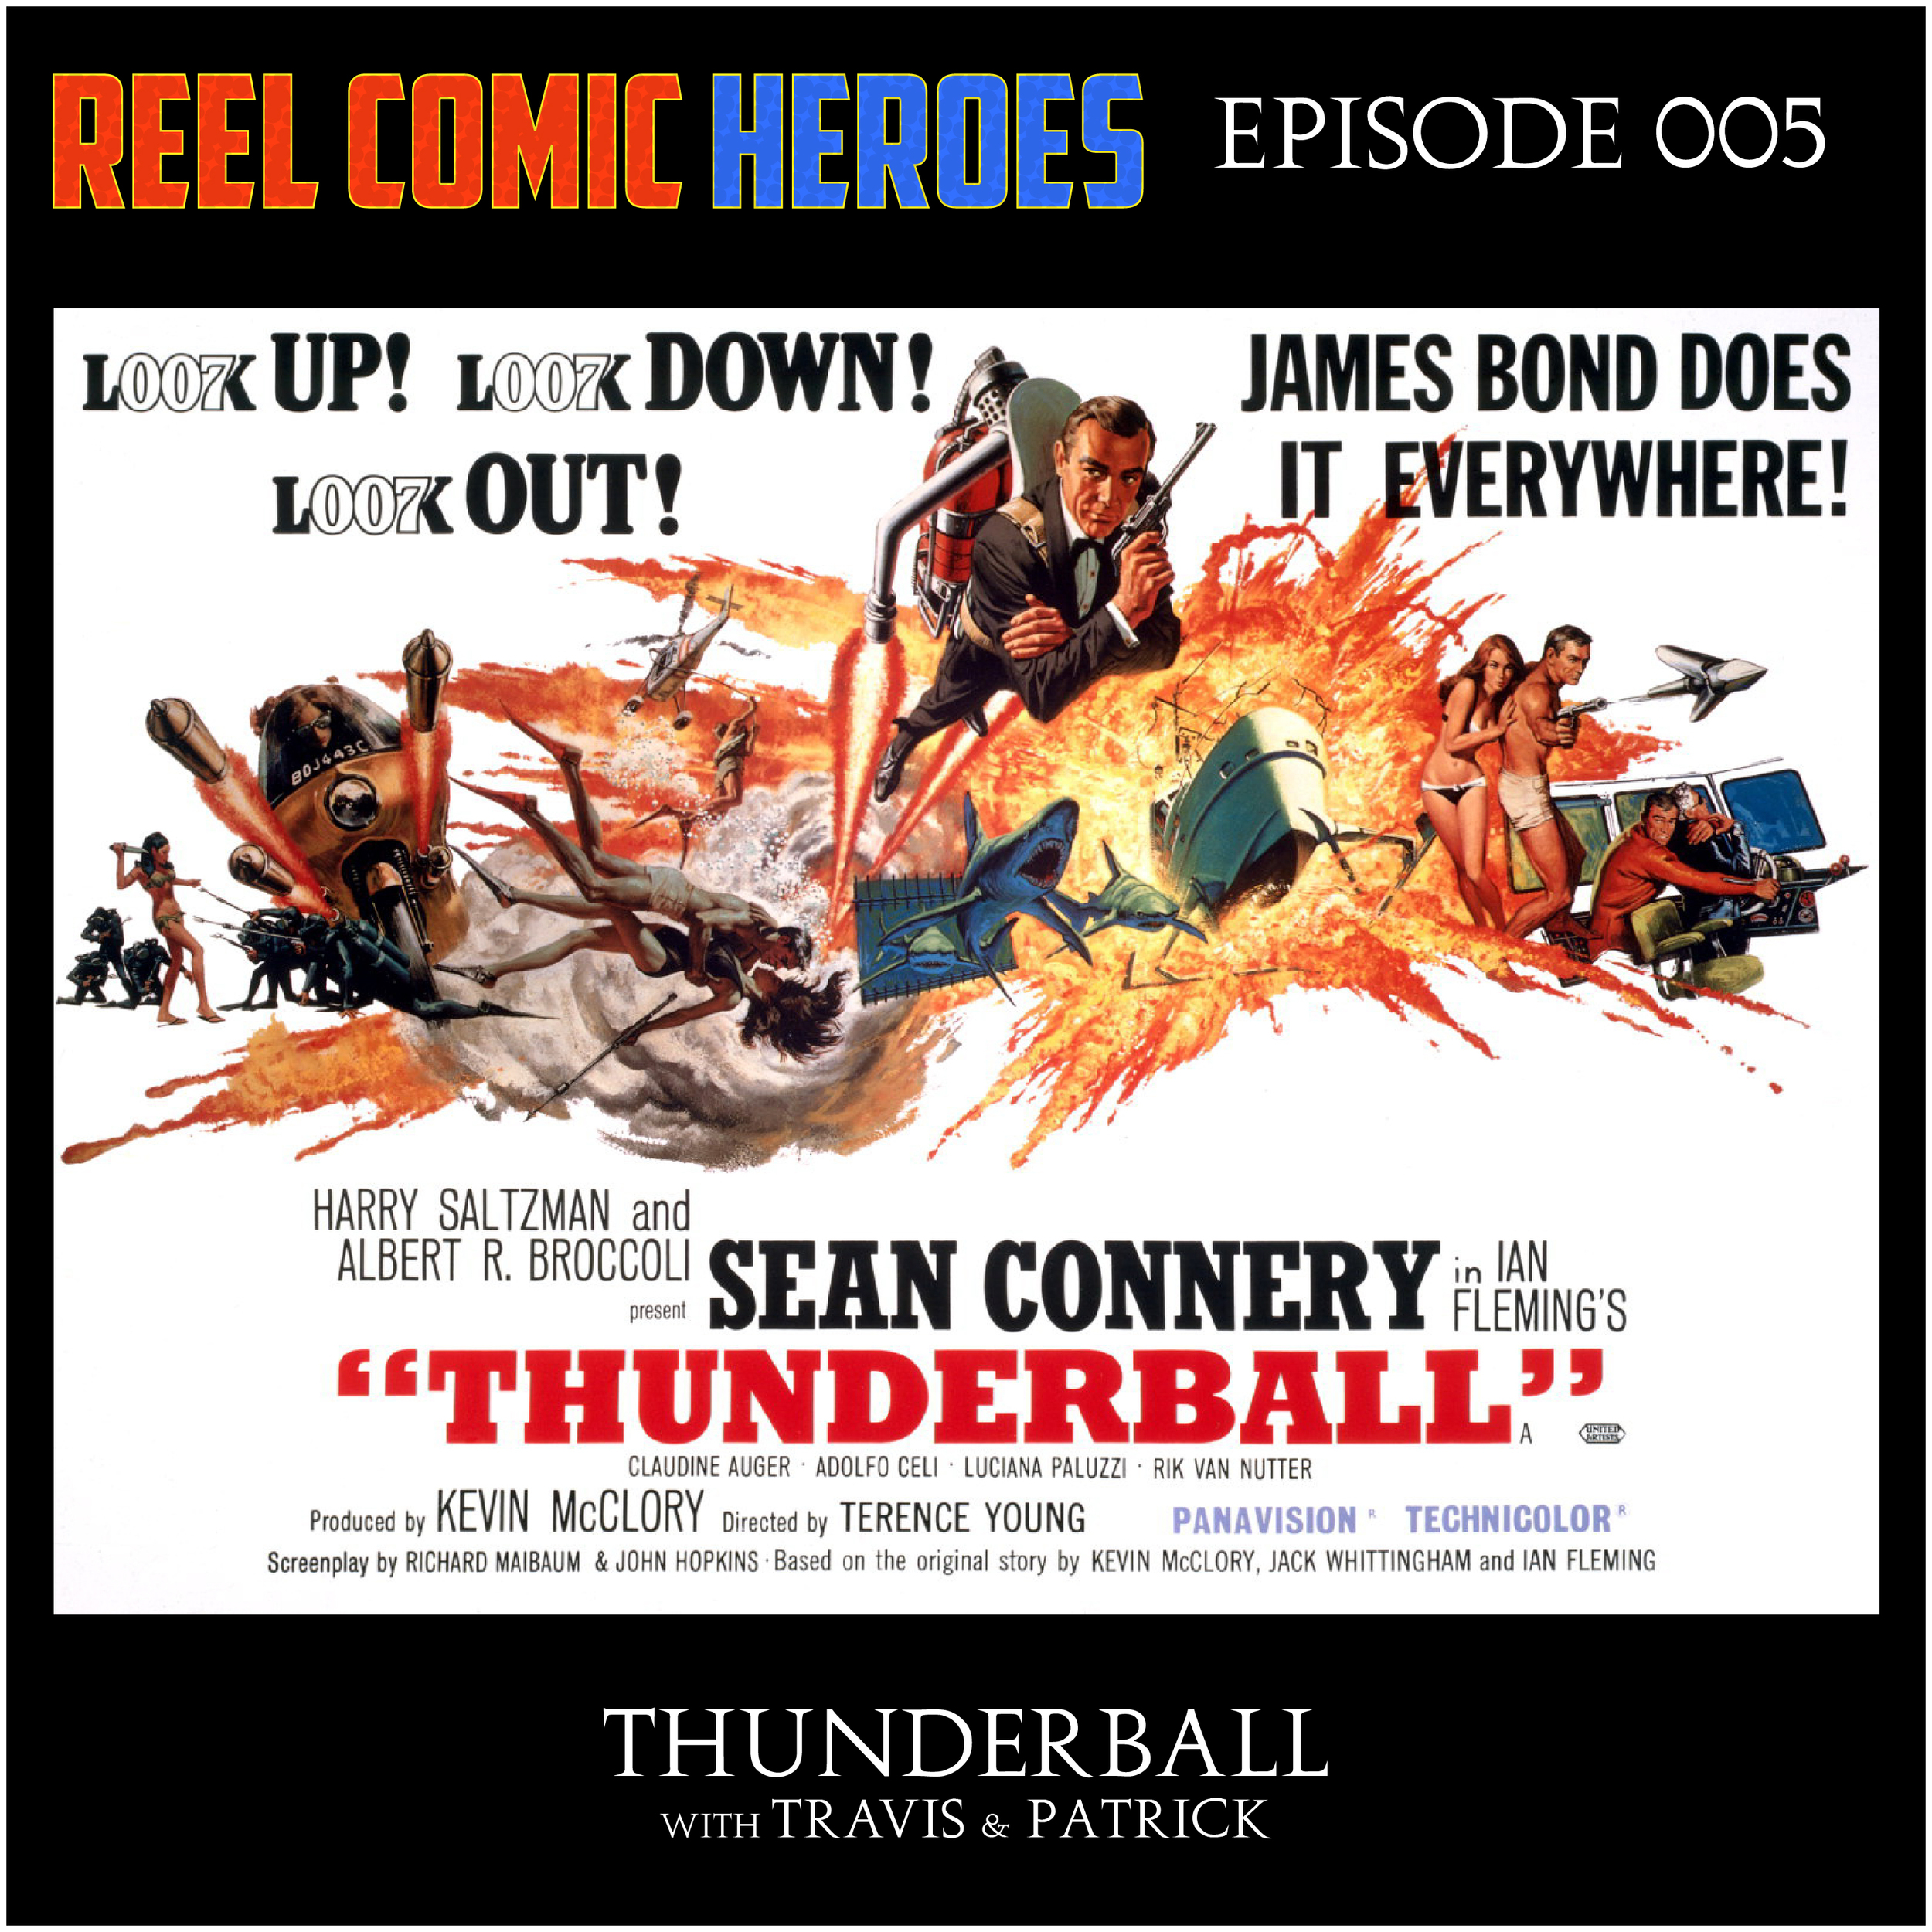 episode005_Thunderball.jpg